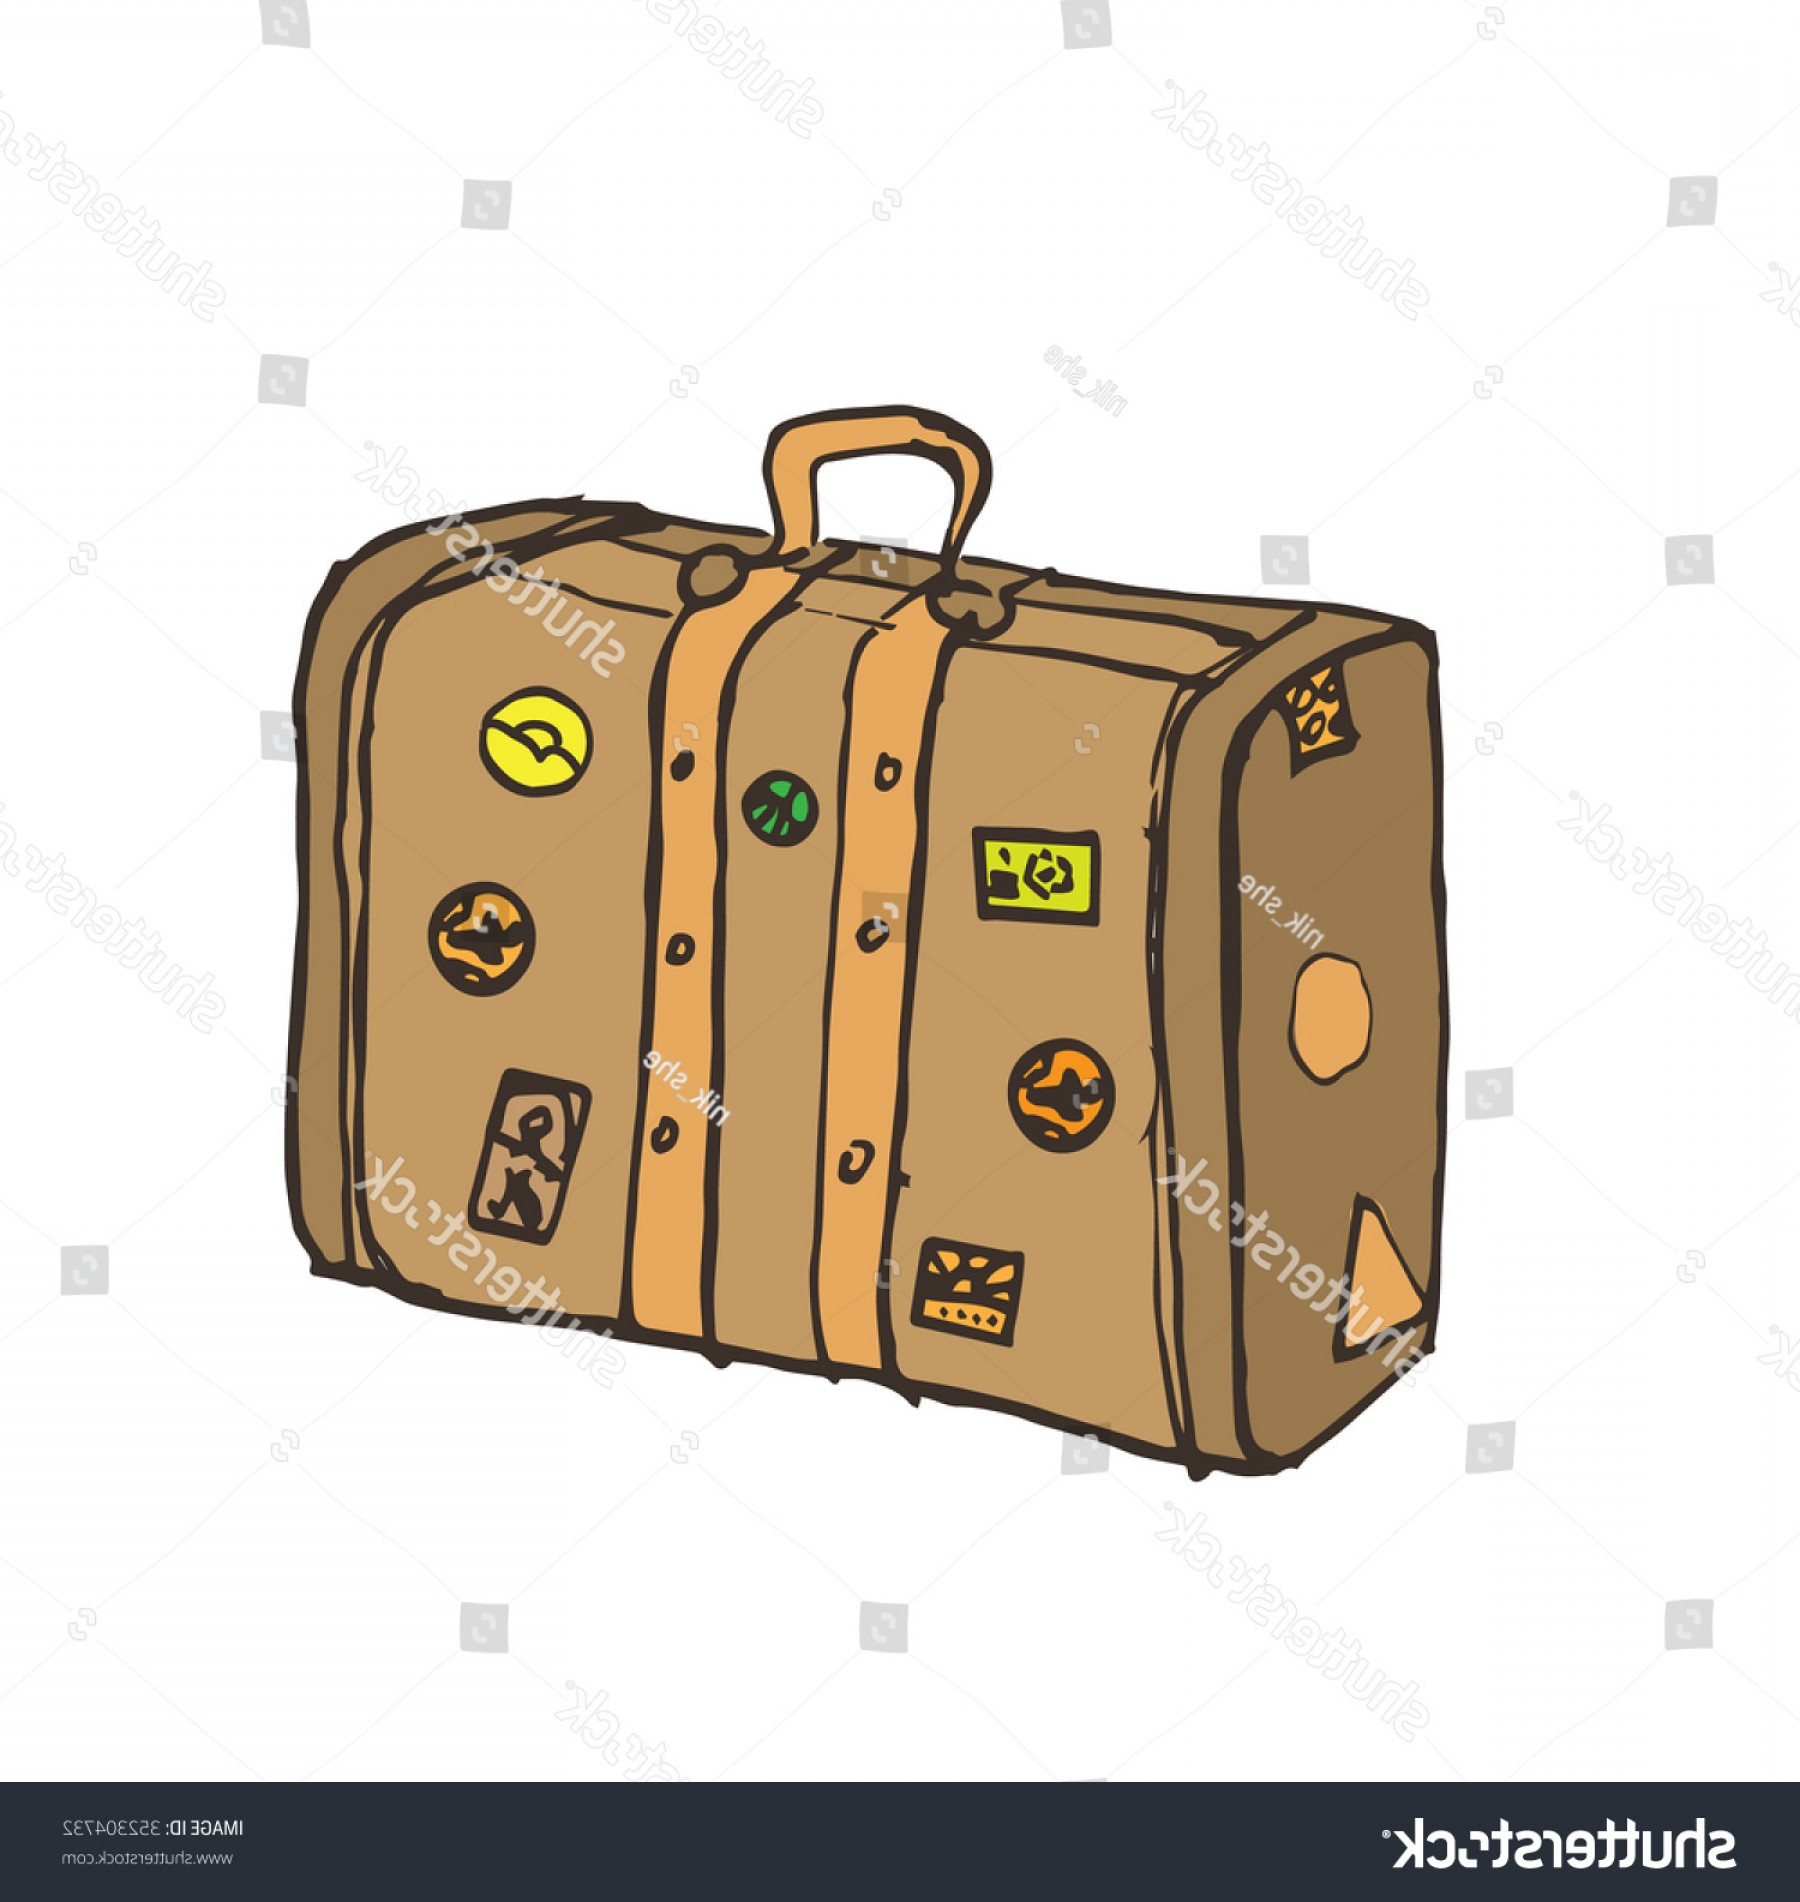 Vintage Luggage Vector: Vintage Suitcase Old Travel Bag Hand